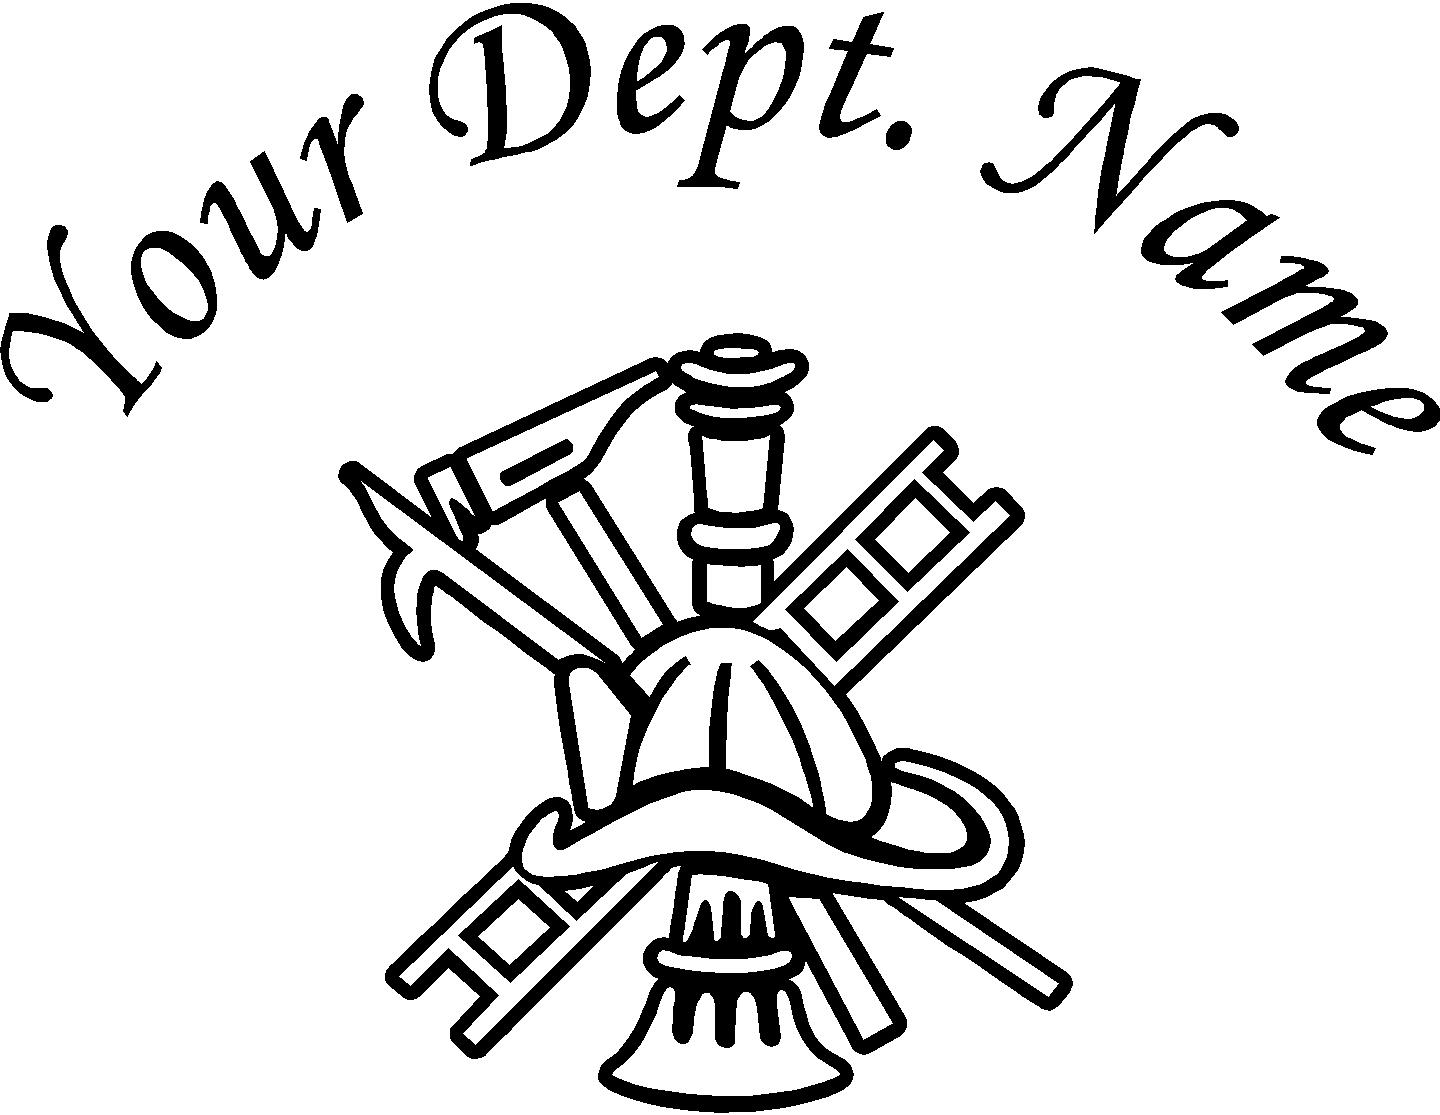 Free Fire Department Clipart, Download Free Clip Art, Free Clip Art.